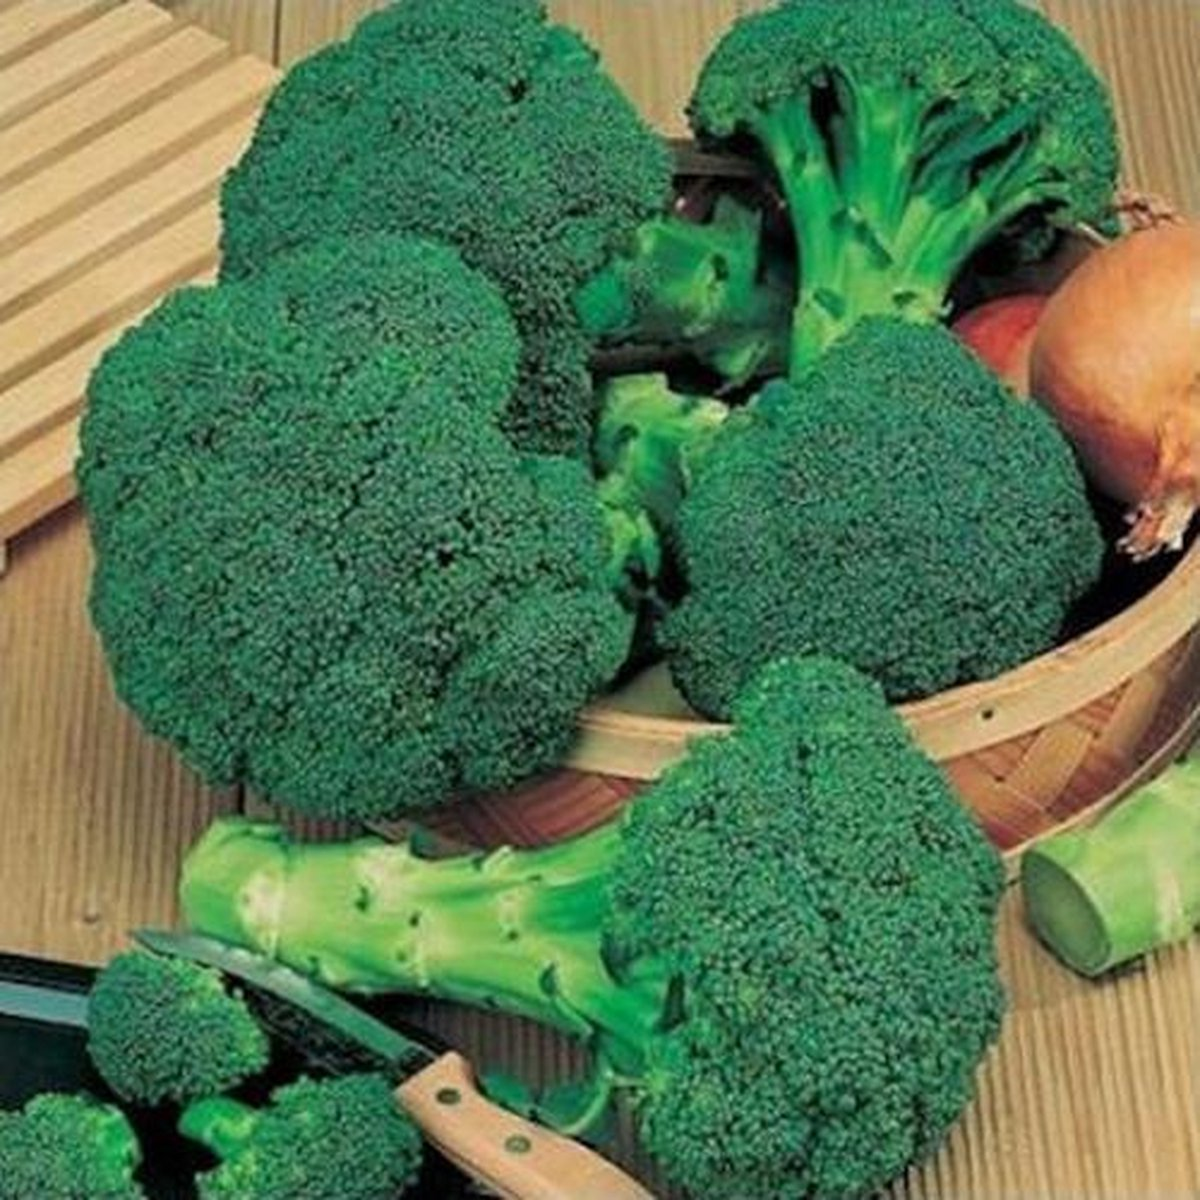 Broccoli - Waltham